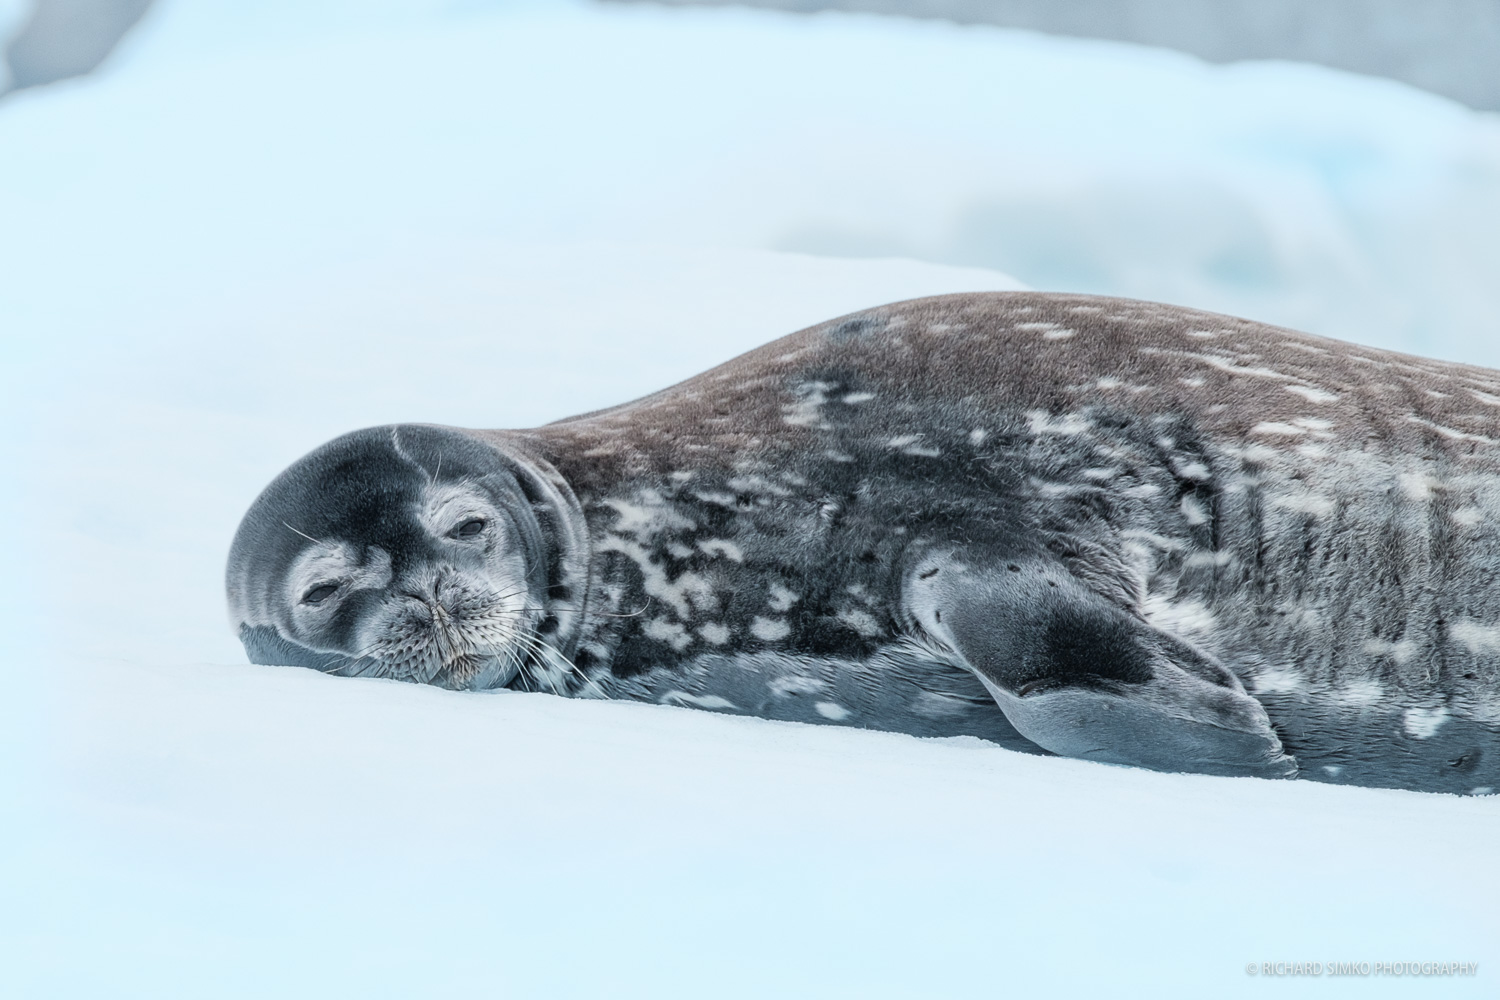 We have found many seals during the cruise. They were snoozing laying down on bigger or smaller icebergs.